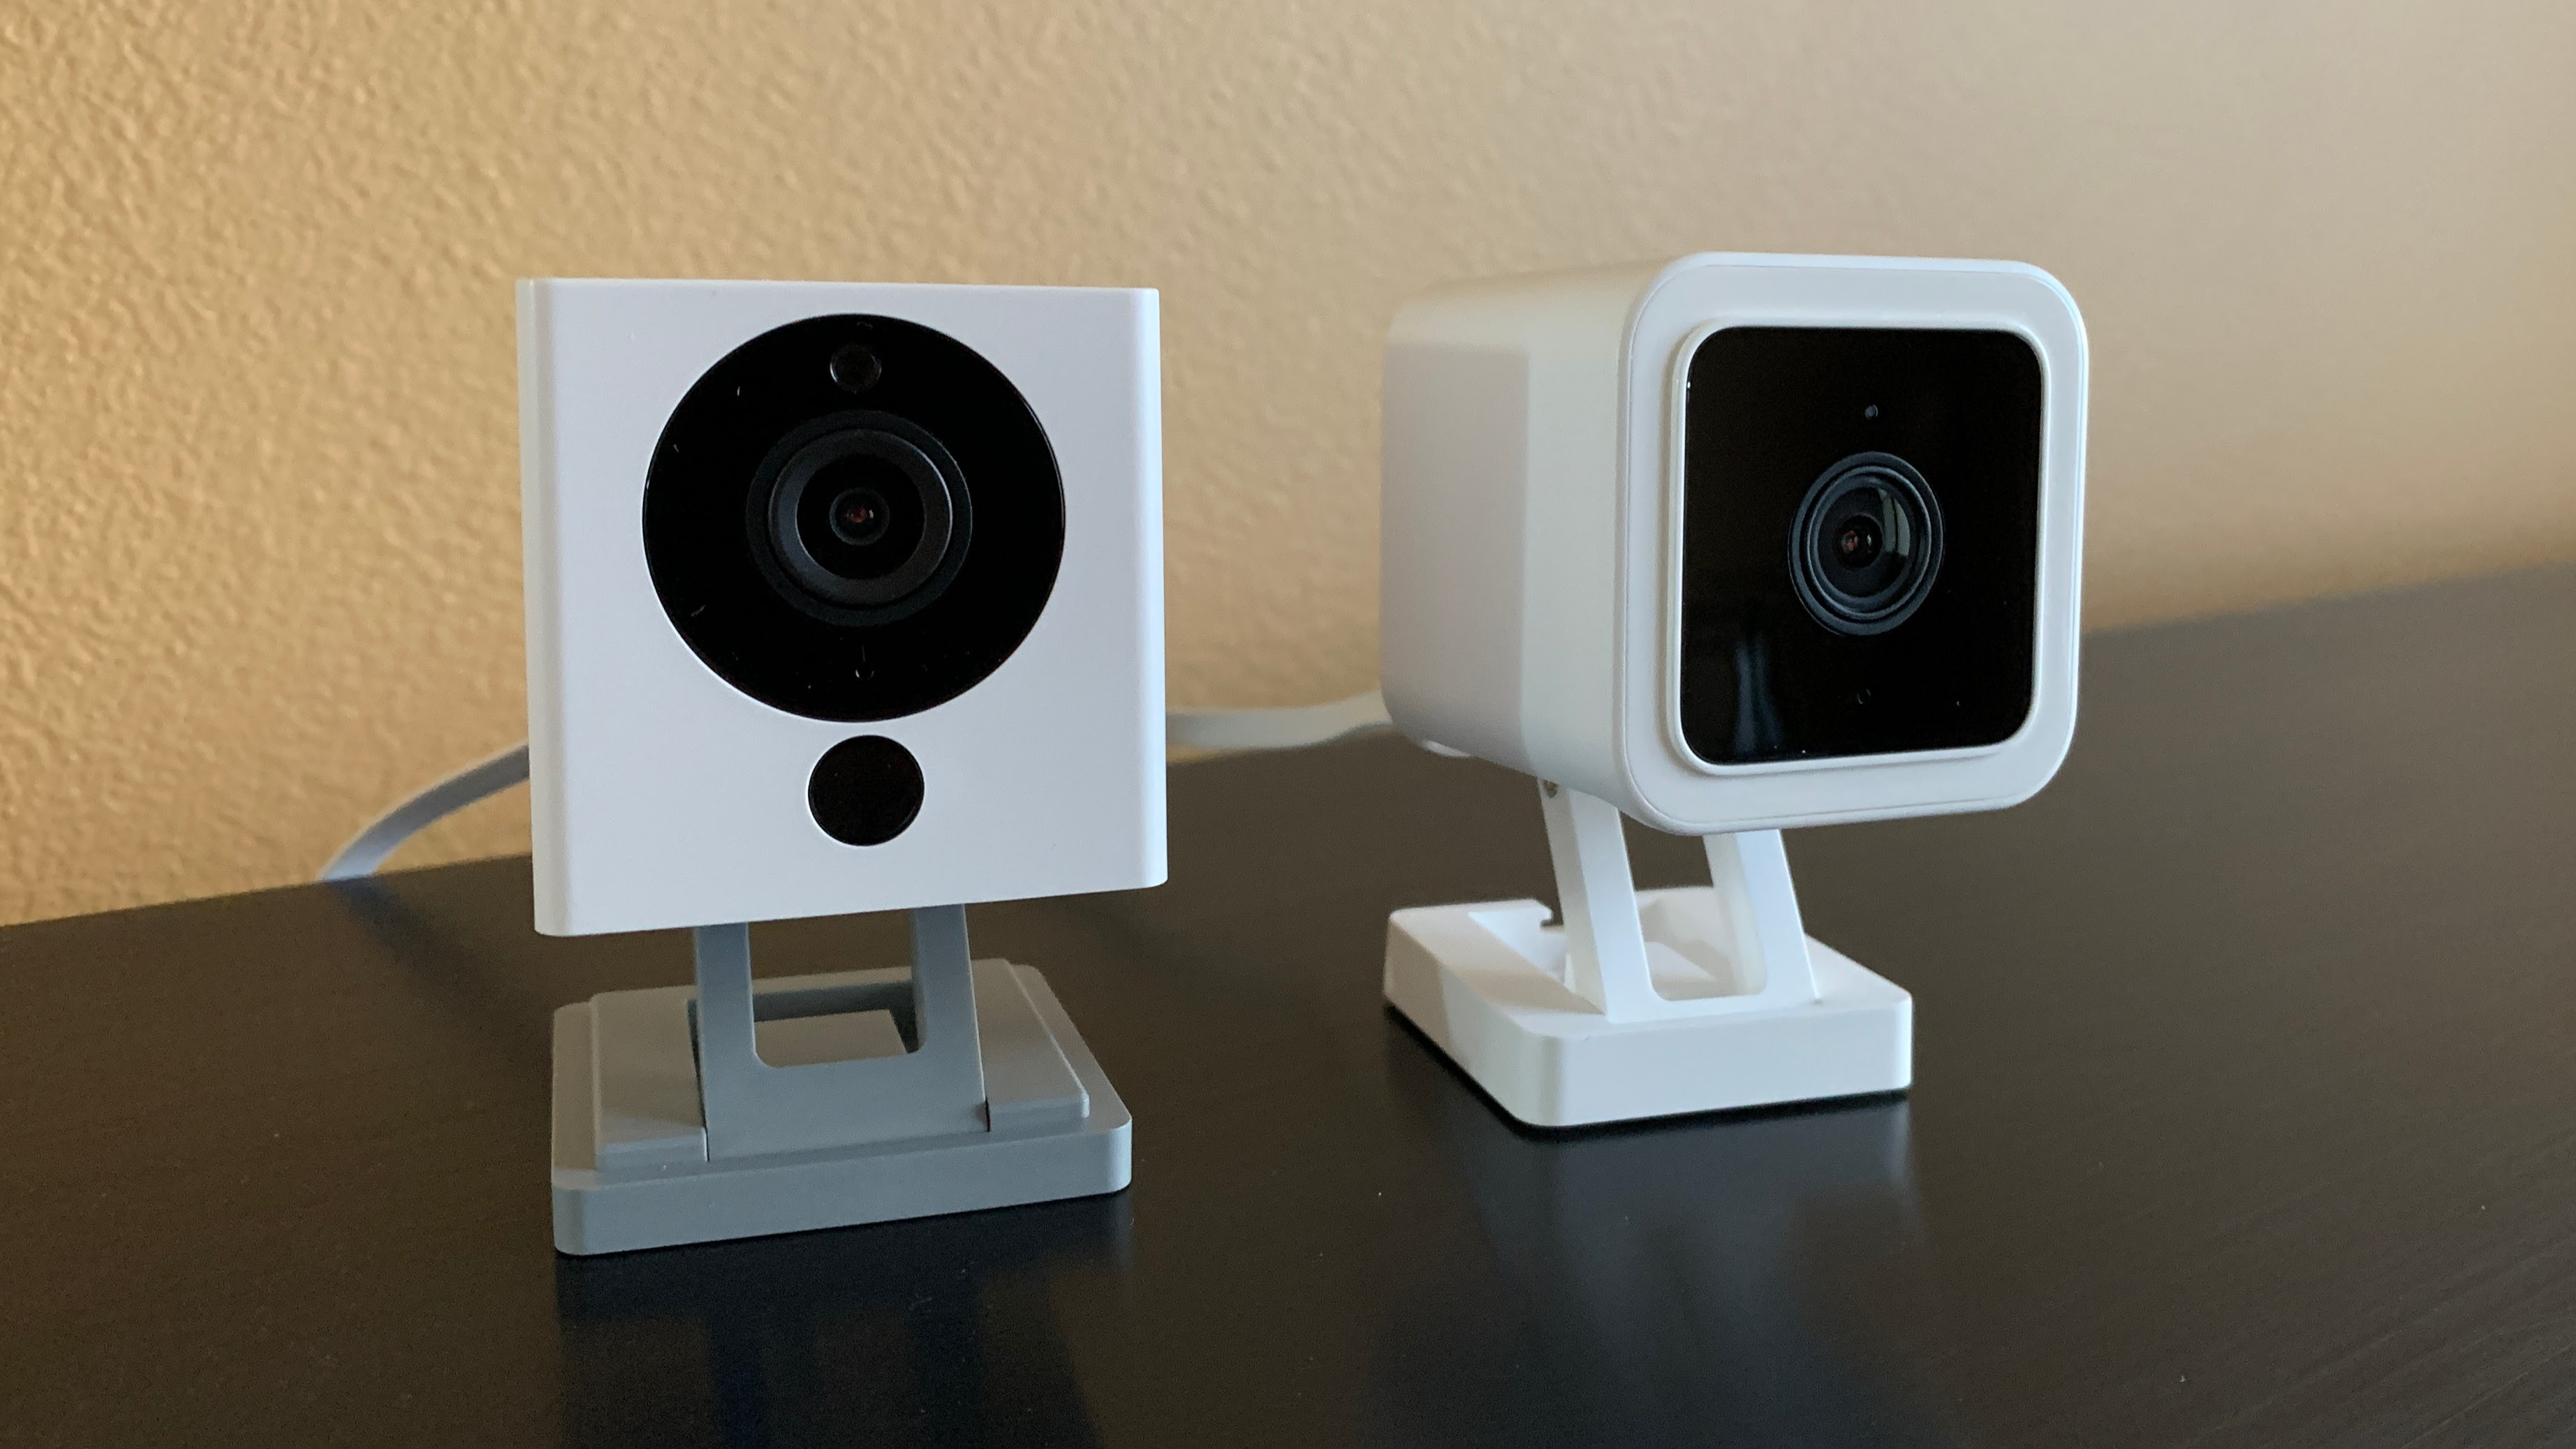 Wyze launches version 3 of its $20 security camera – TechCrunch